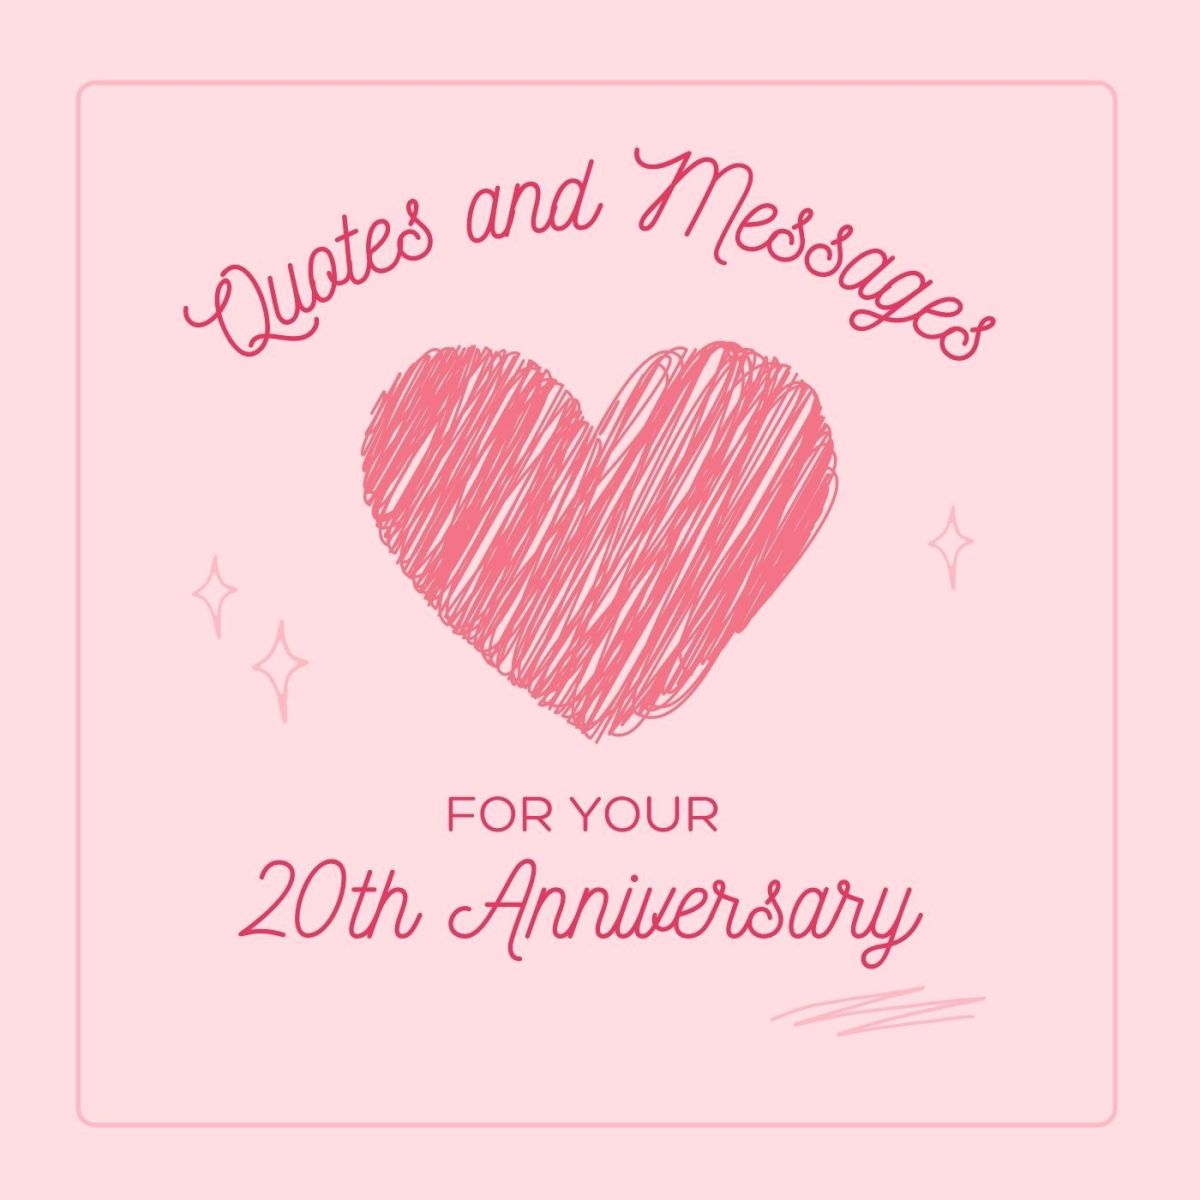 20th Anniversary: Wishes, Quotes, and Greeting Card Messages